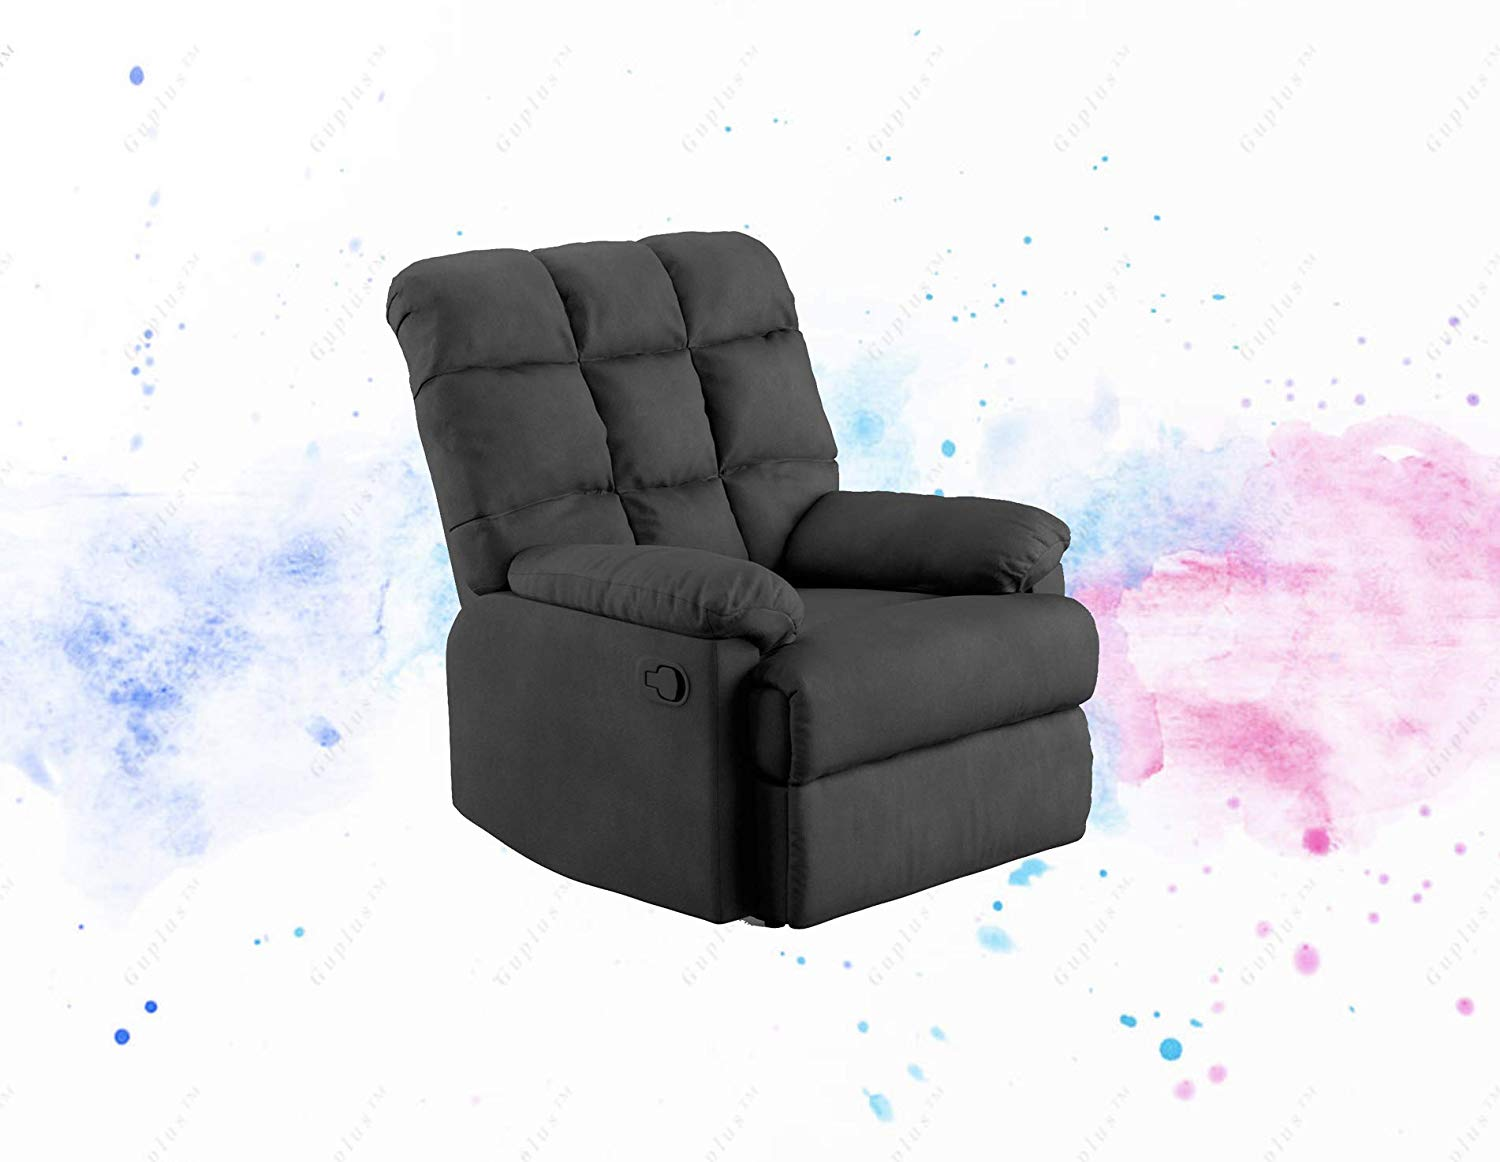 Microfiber Biscuit Back Recliner Chair, Multiple Colors generously designed overstuffed recliner